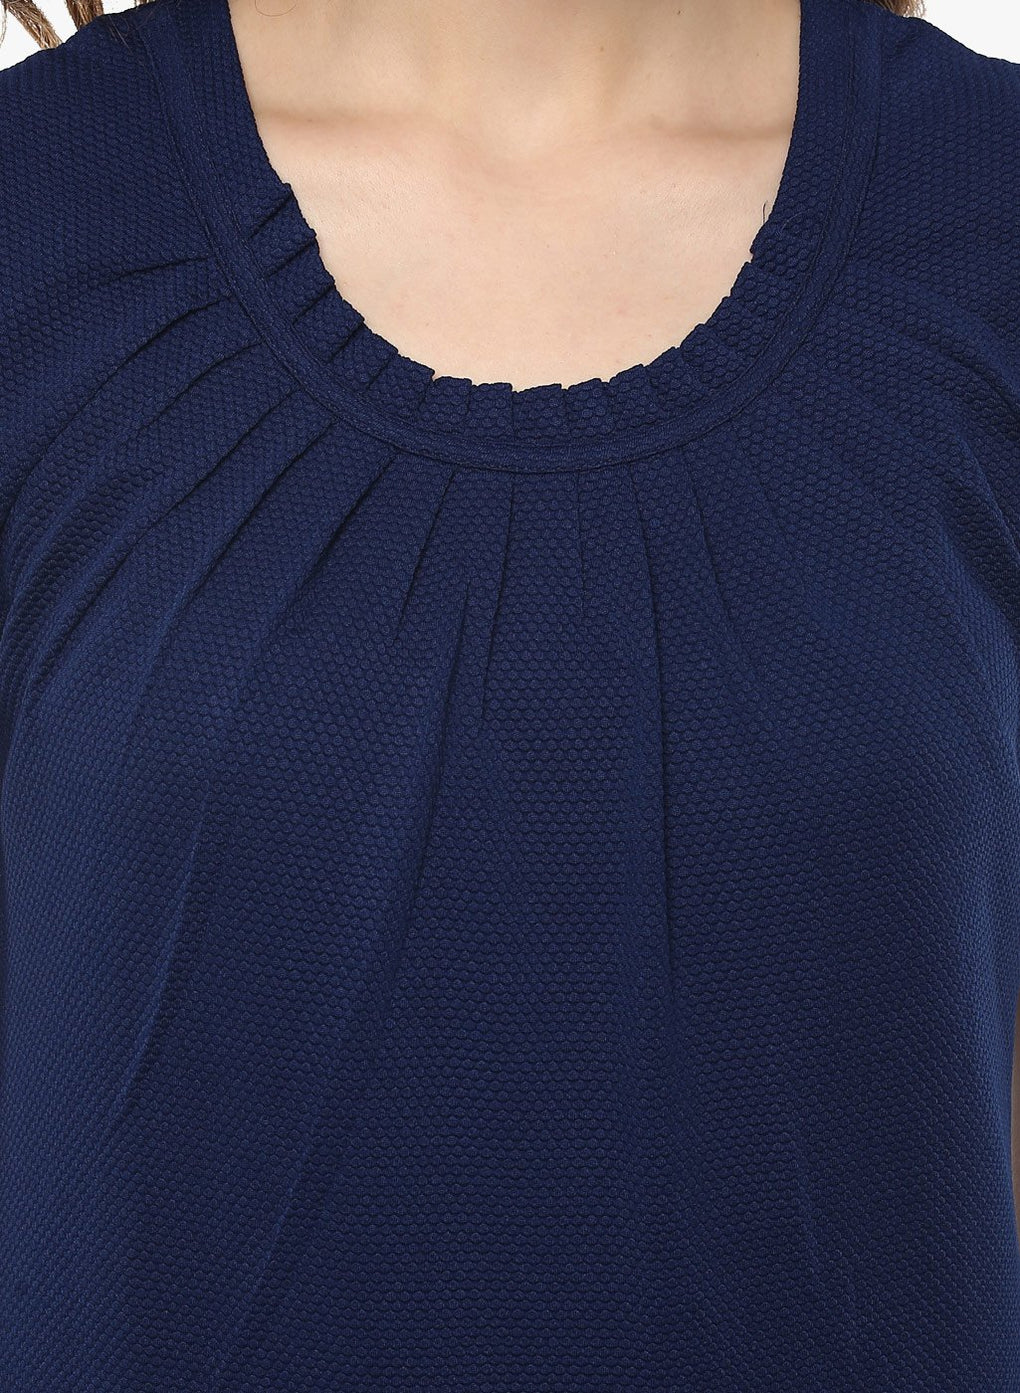 miss forever blue solid top